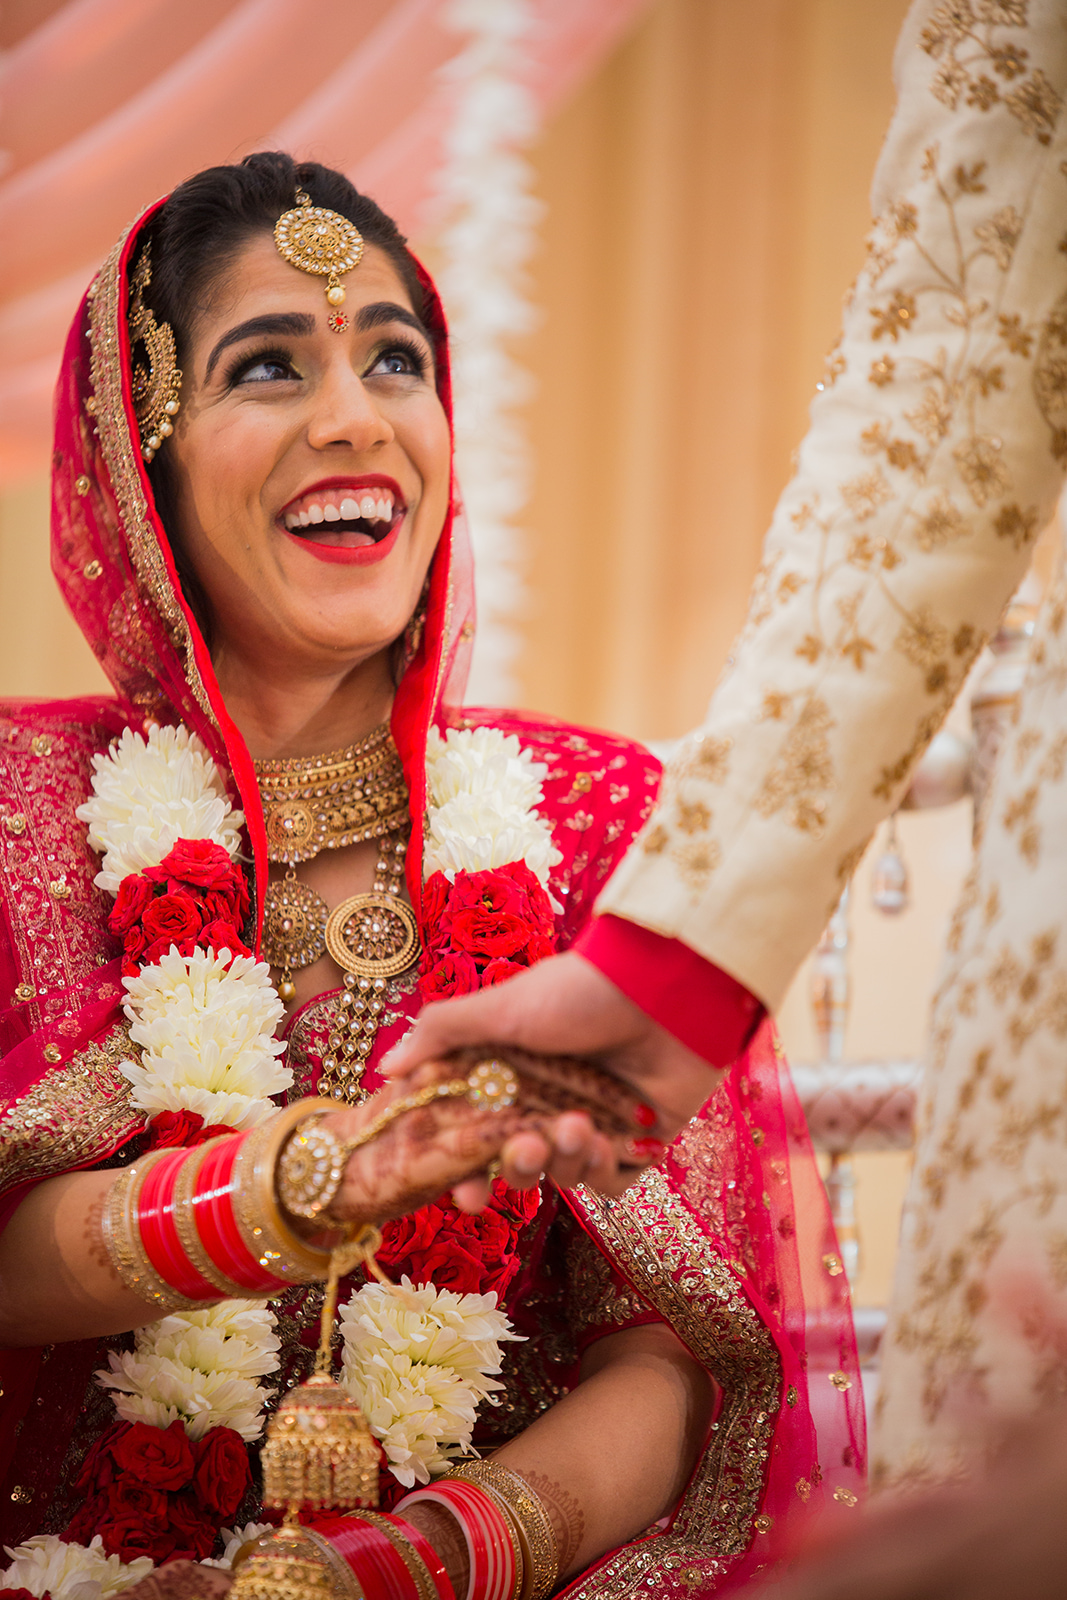 Le Cape Weddings - Sumeet and Chavi - Ceremony --46.jpg